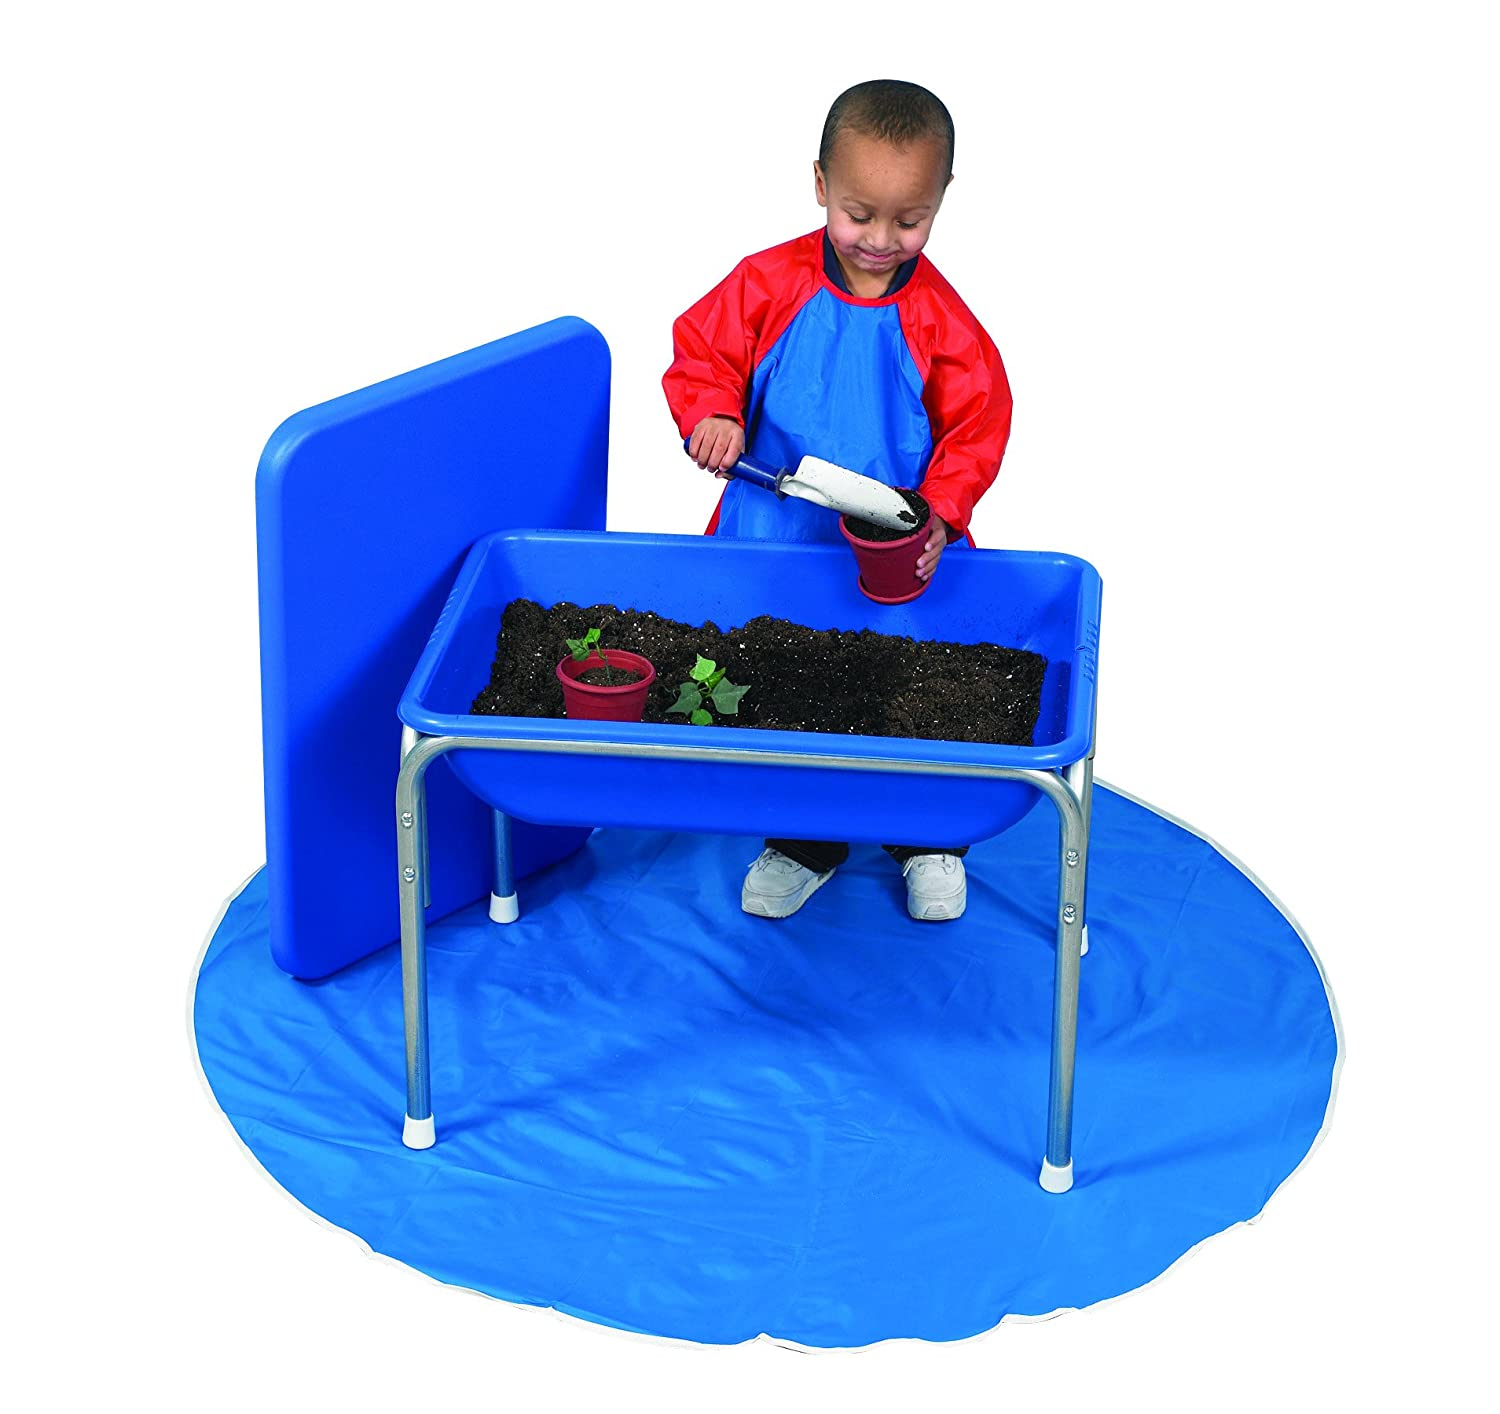 Children's Factory Small Sensory Table & Lid Set Classroom Furniture (1132) ababy TLC-1130